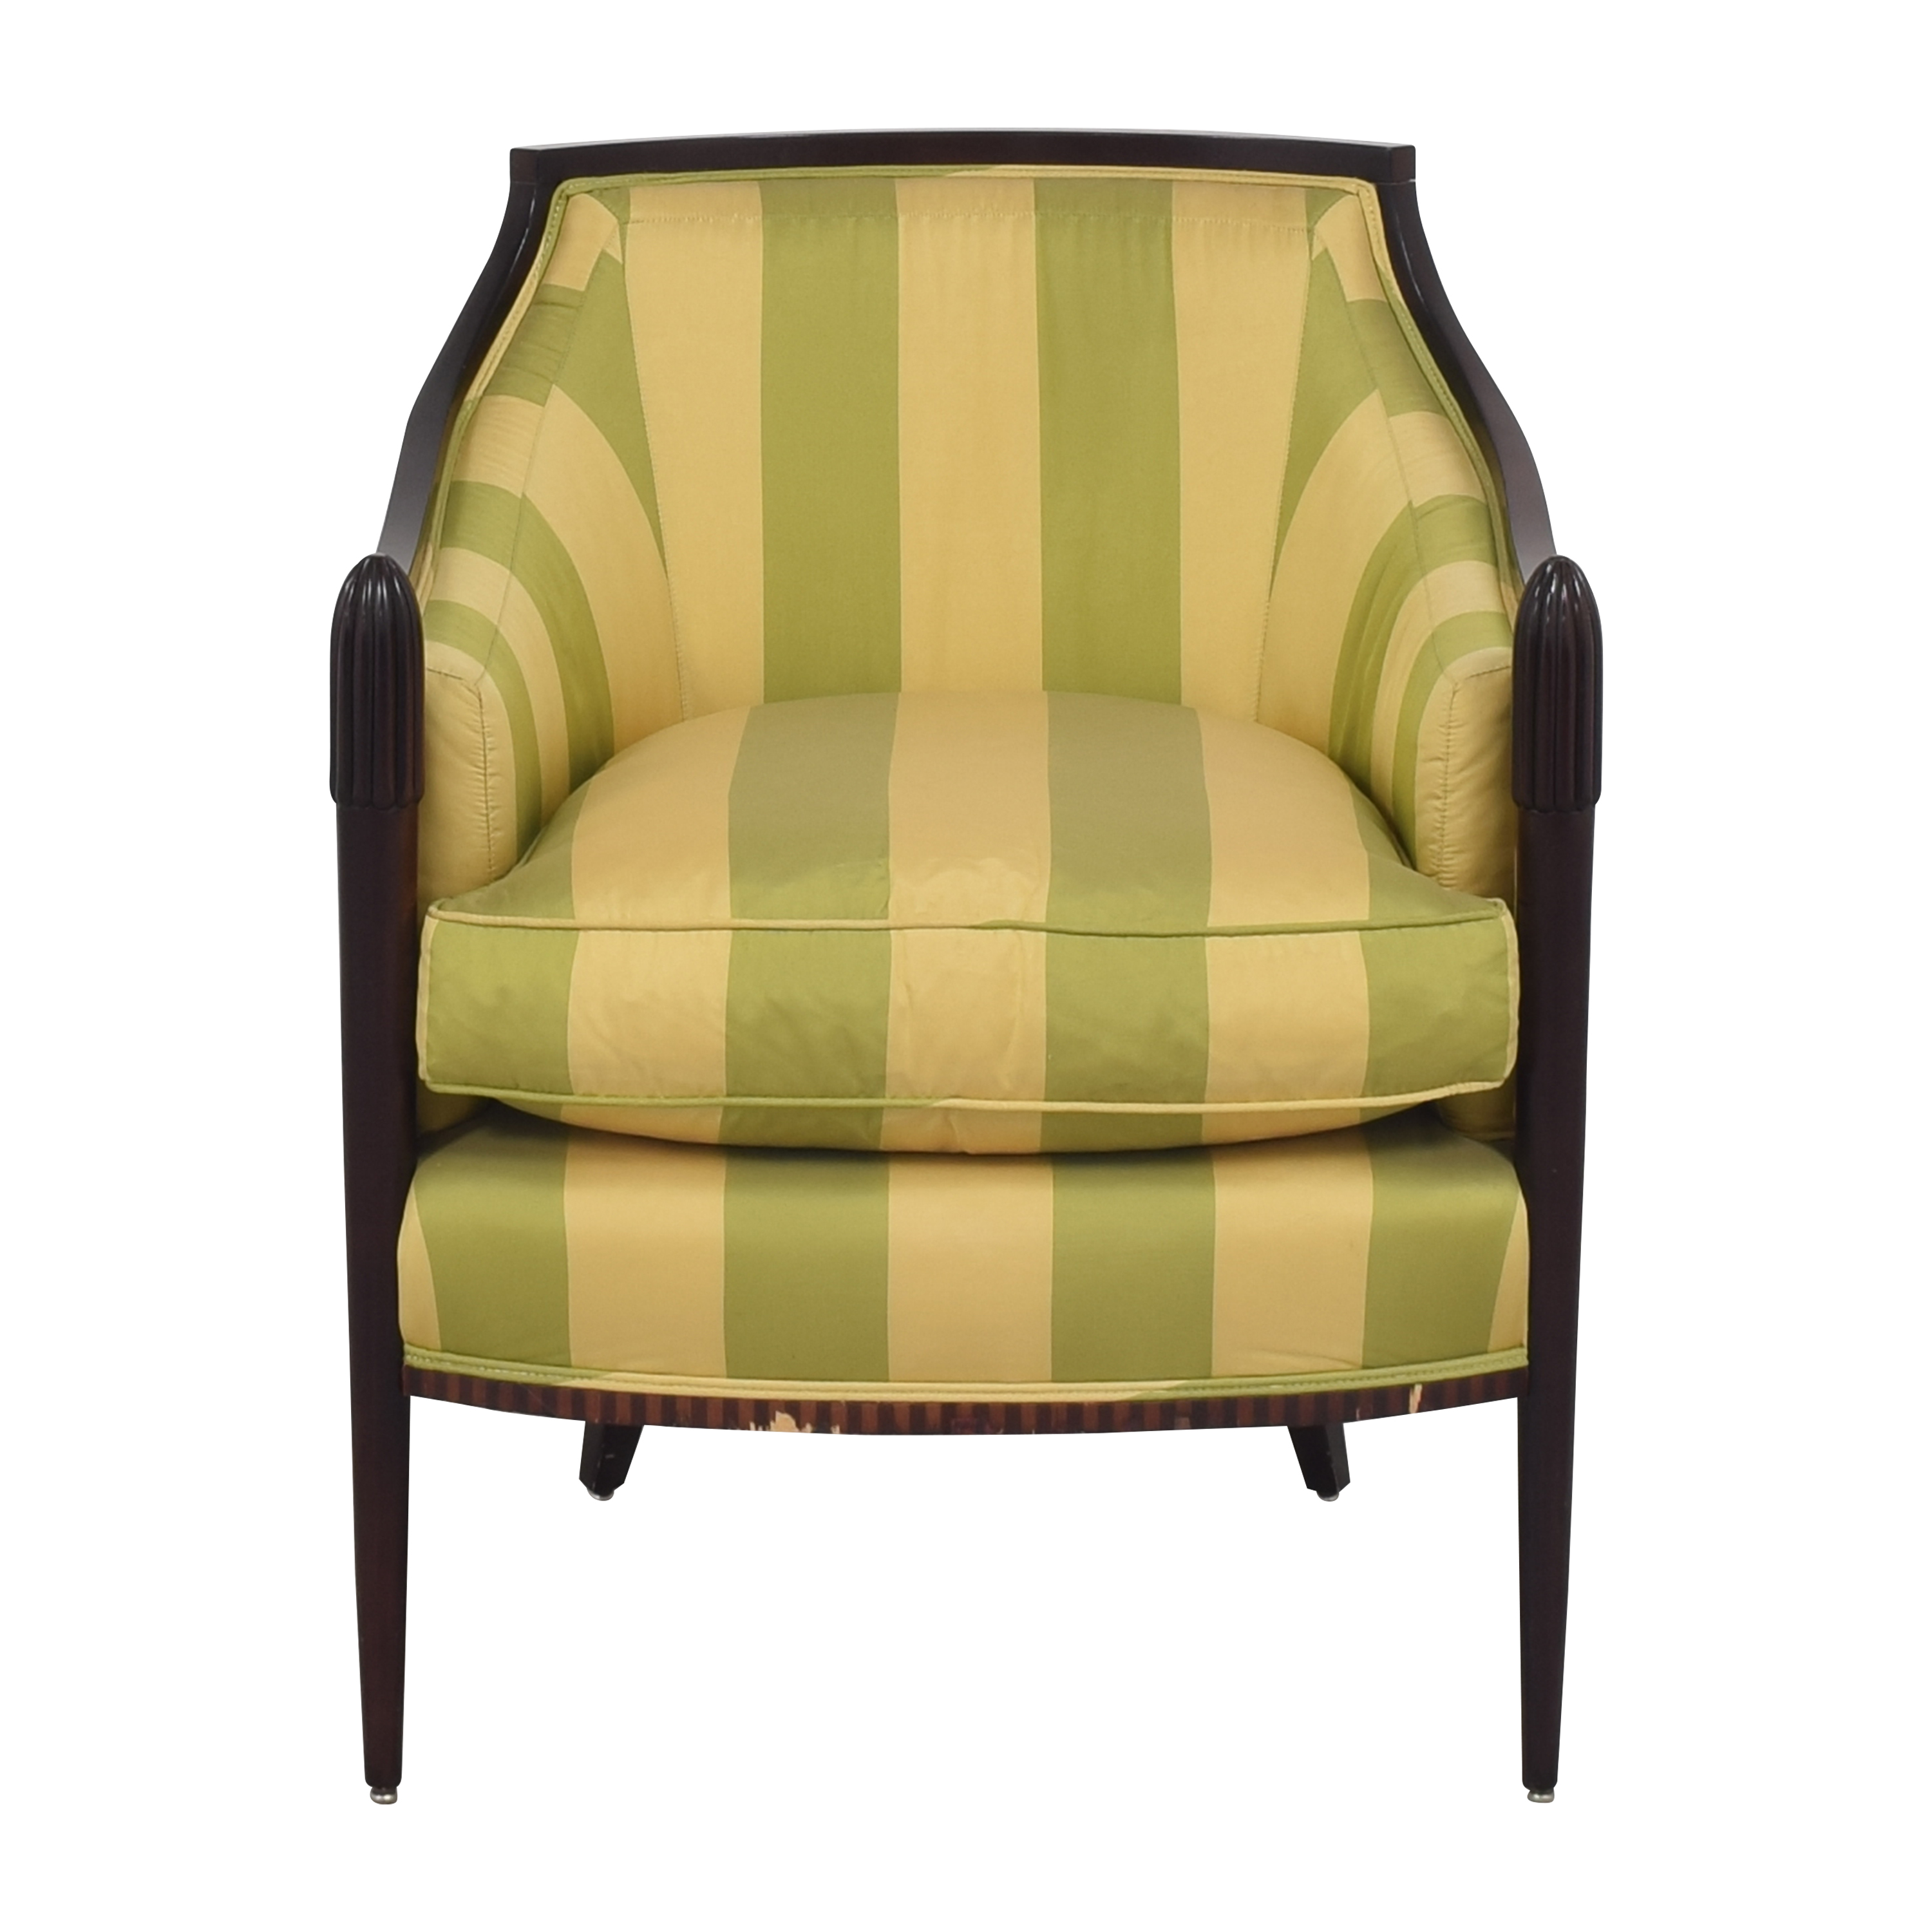 Baker Furniture Barbara Barry for Baker Furniture Deco Classic Lounge Chair Chairs